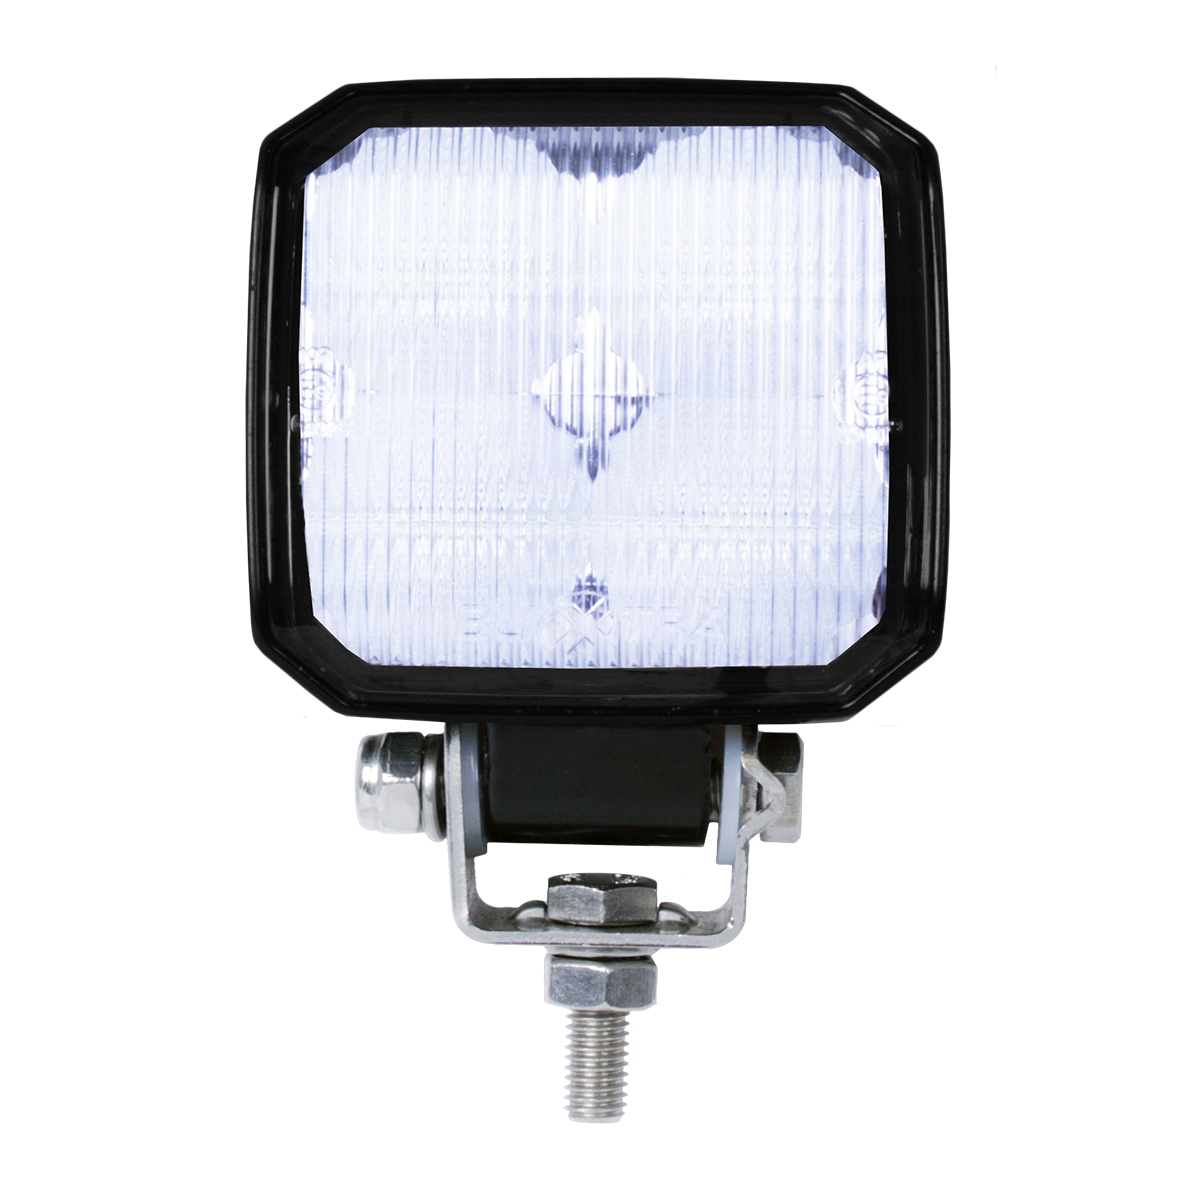 76359 Small High Power LED Flood Light